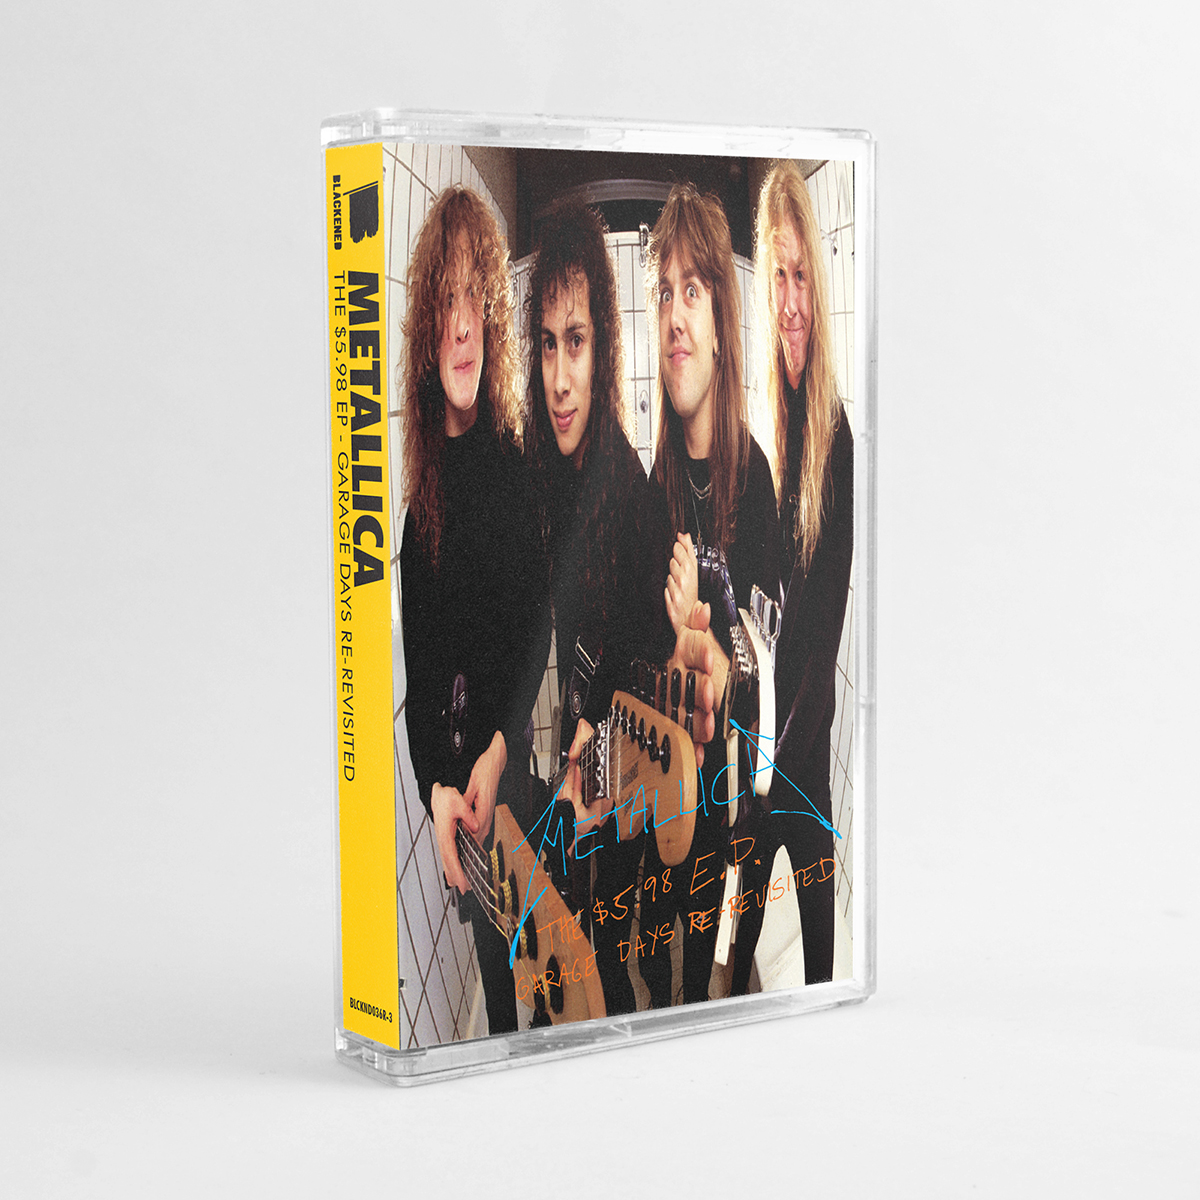 The $5.98 EP – Garage Days Re-Revisited (Remastered) – Cassette (Limited Edition) - Metallica